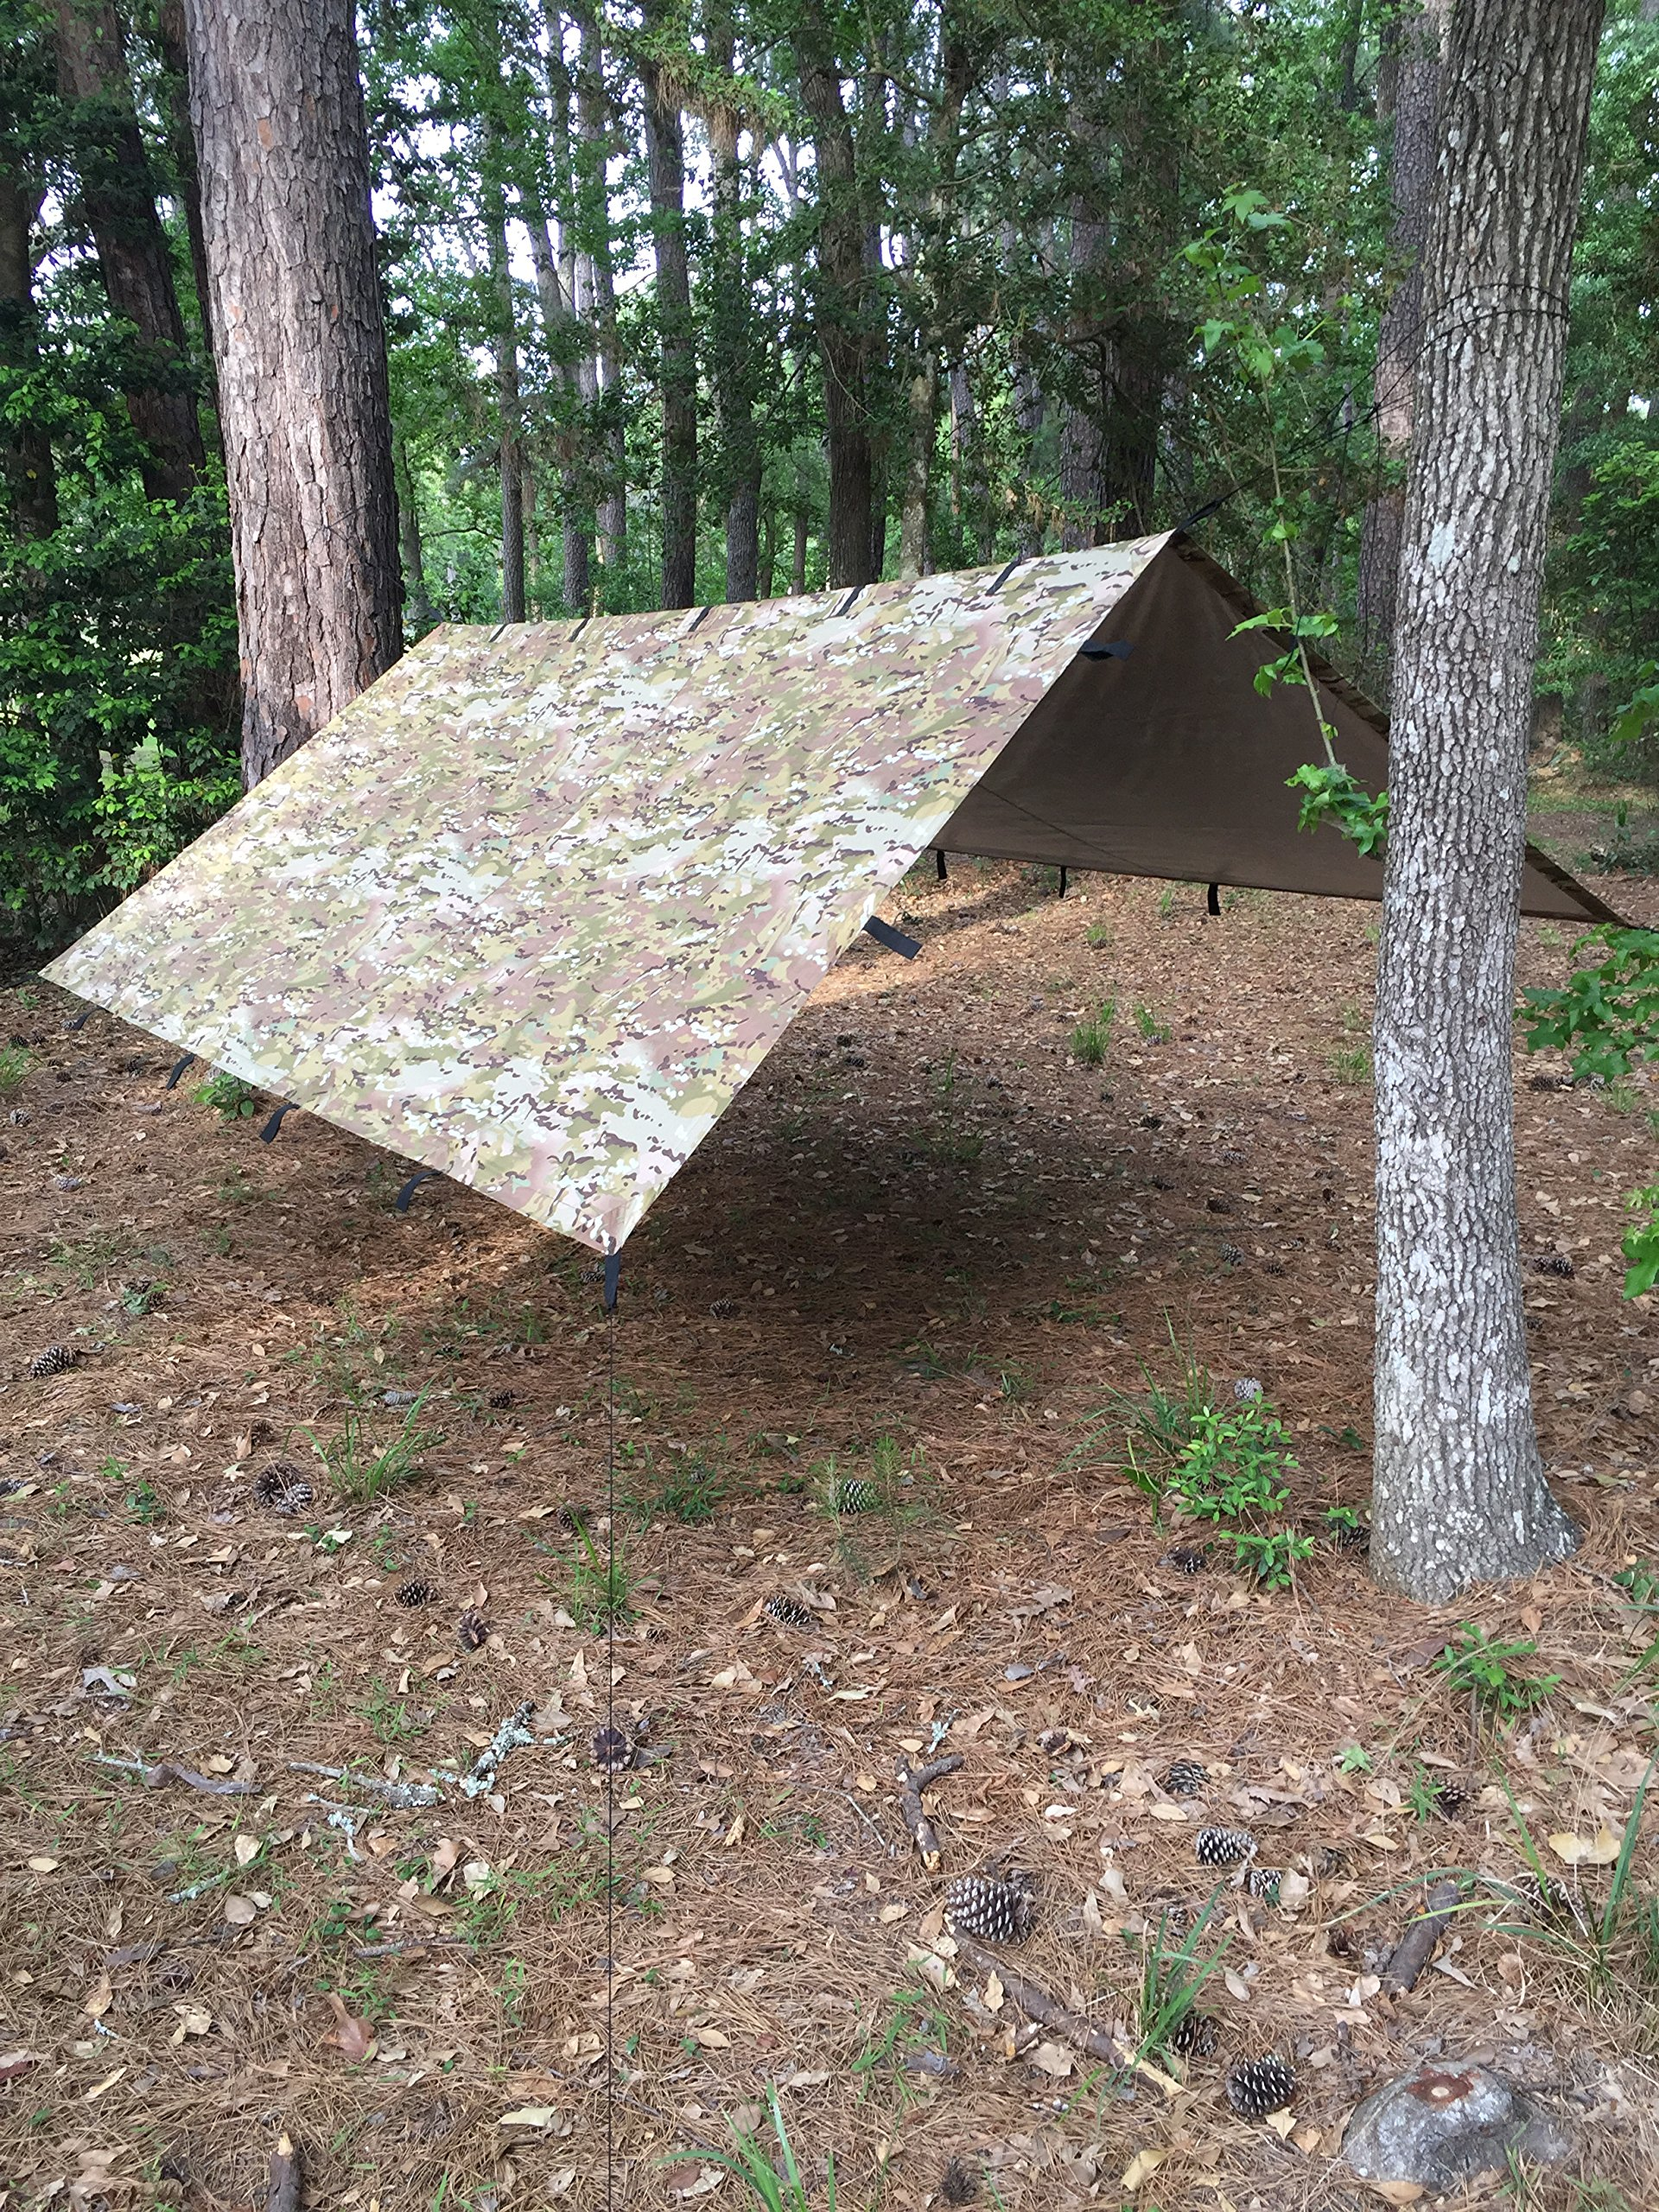 10' x 10' Thermal Reflective Water Proof Tarpaulin Shelter | Mongrel EDT By Arcadia Gear | Multi-Terrain Pattern Tarp Designed For When Your Life Depends On It by Arcadia Gear (Image #4)